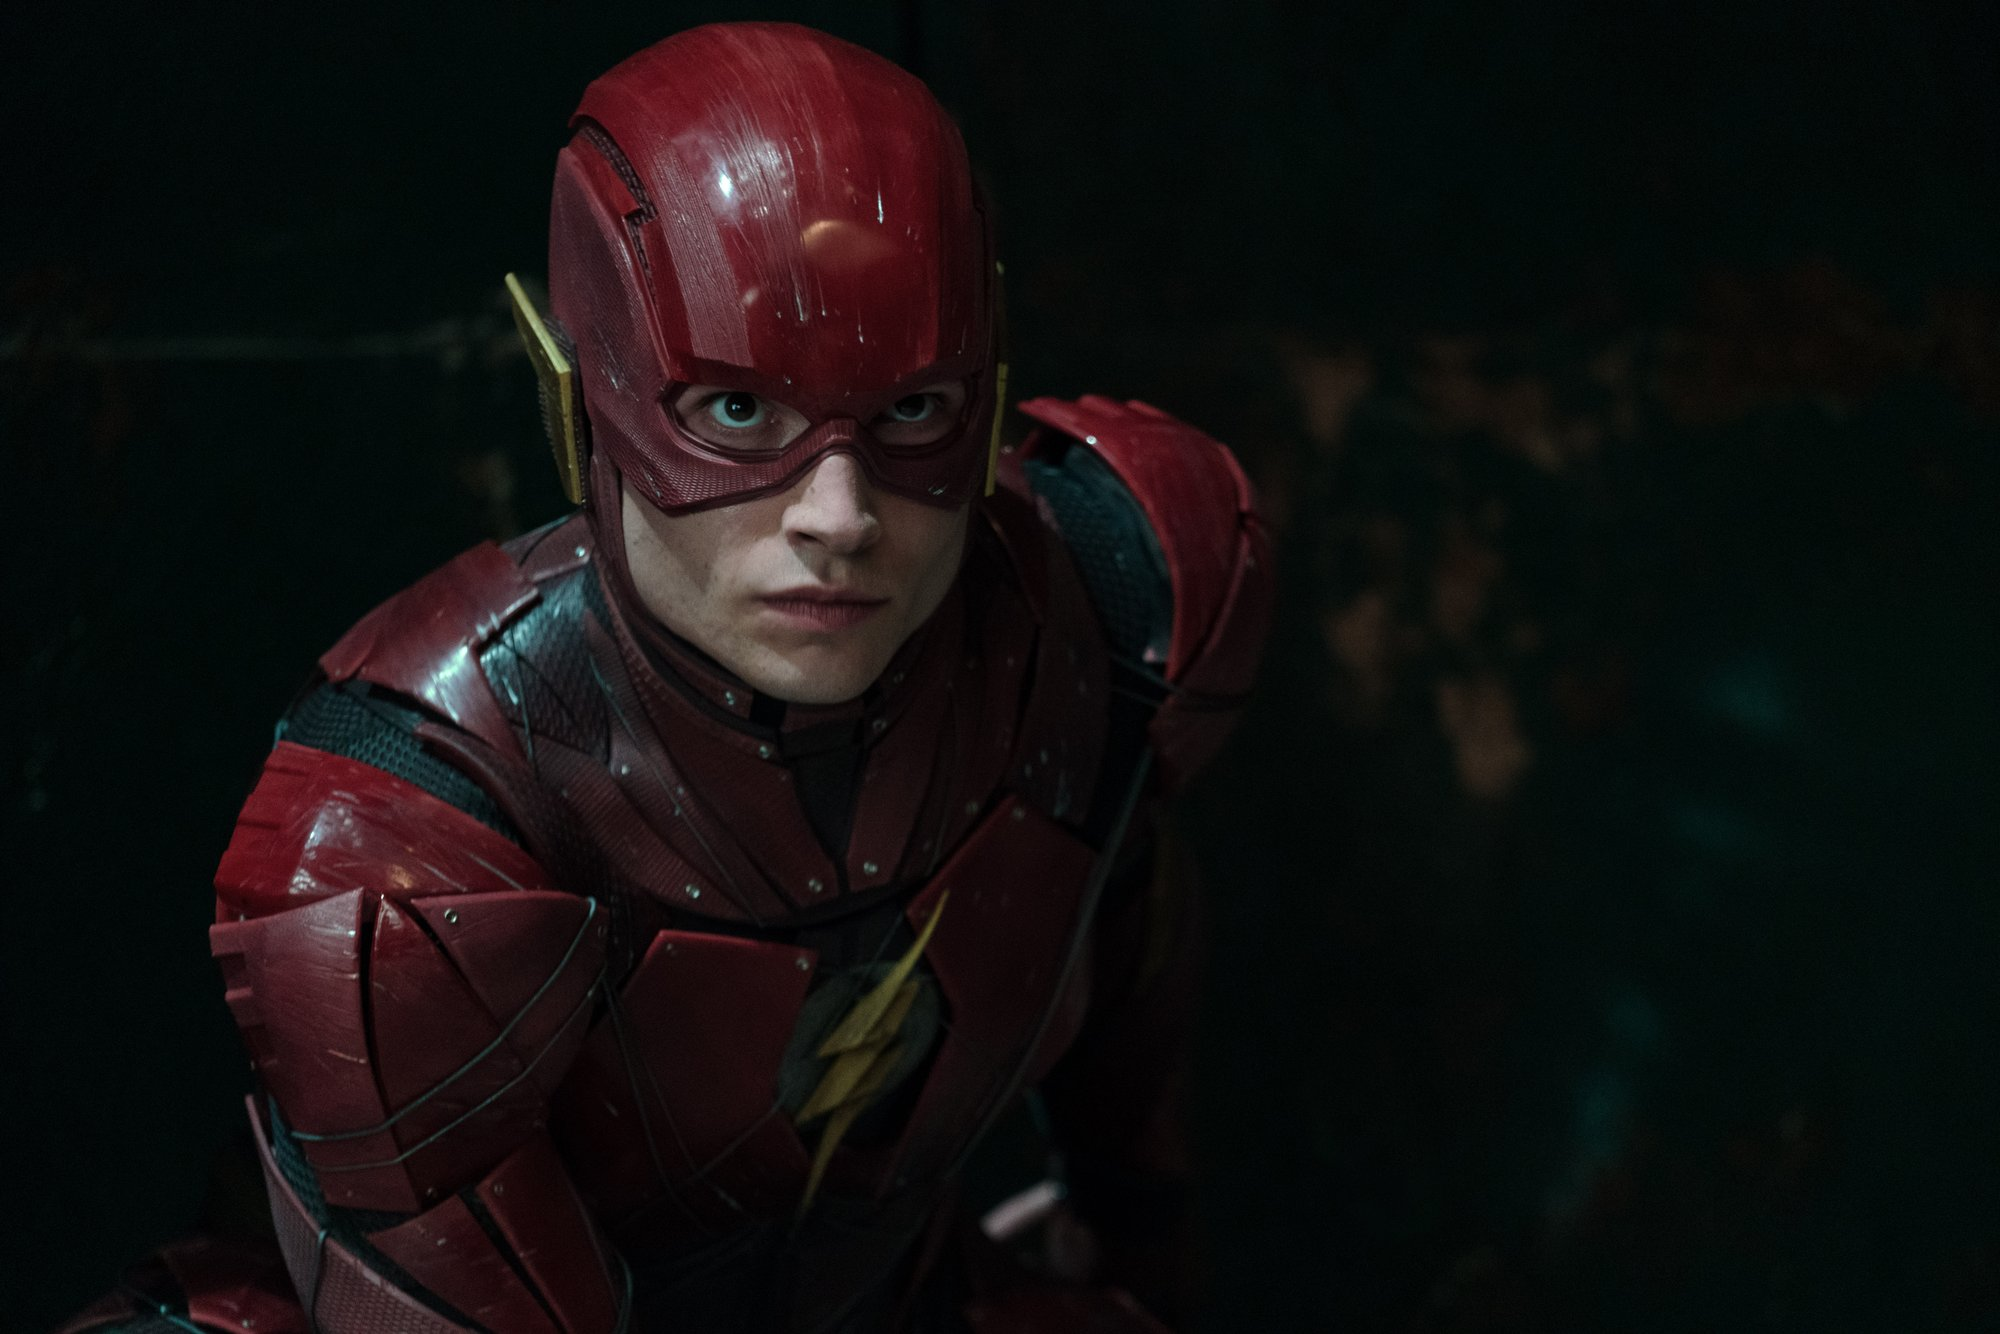 Justice League (2017) Still - The Flash